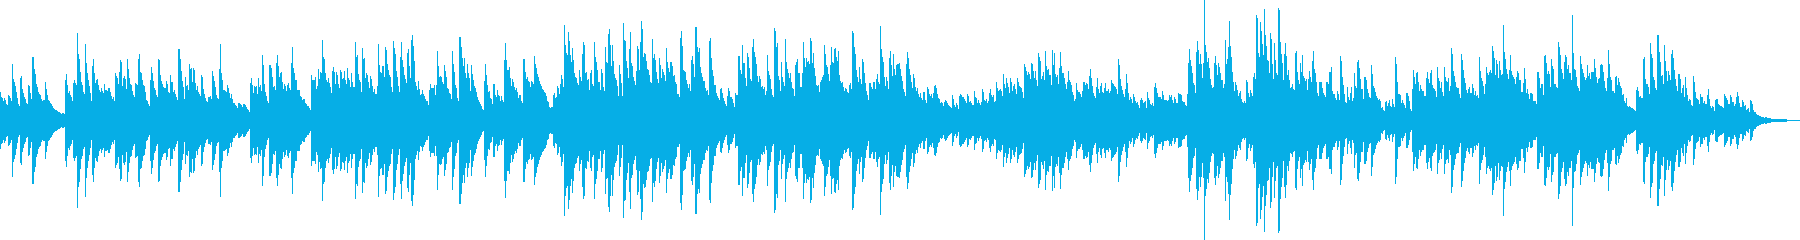 Heavy and sad piano solo song's reproduced waveform